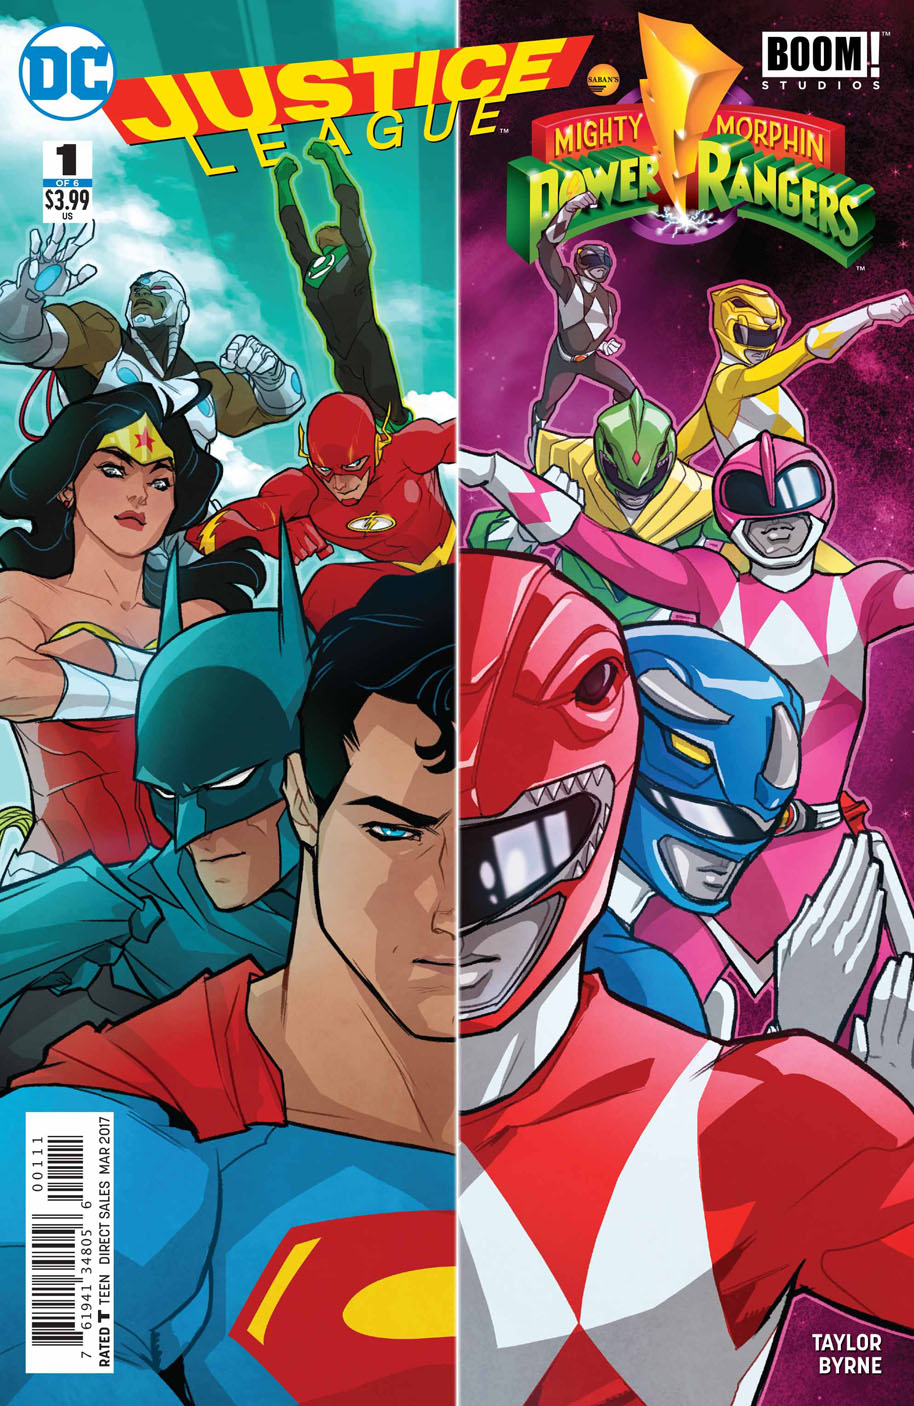 Justice League Power Rangers 1 cover